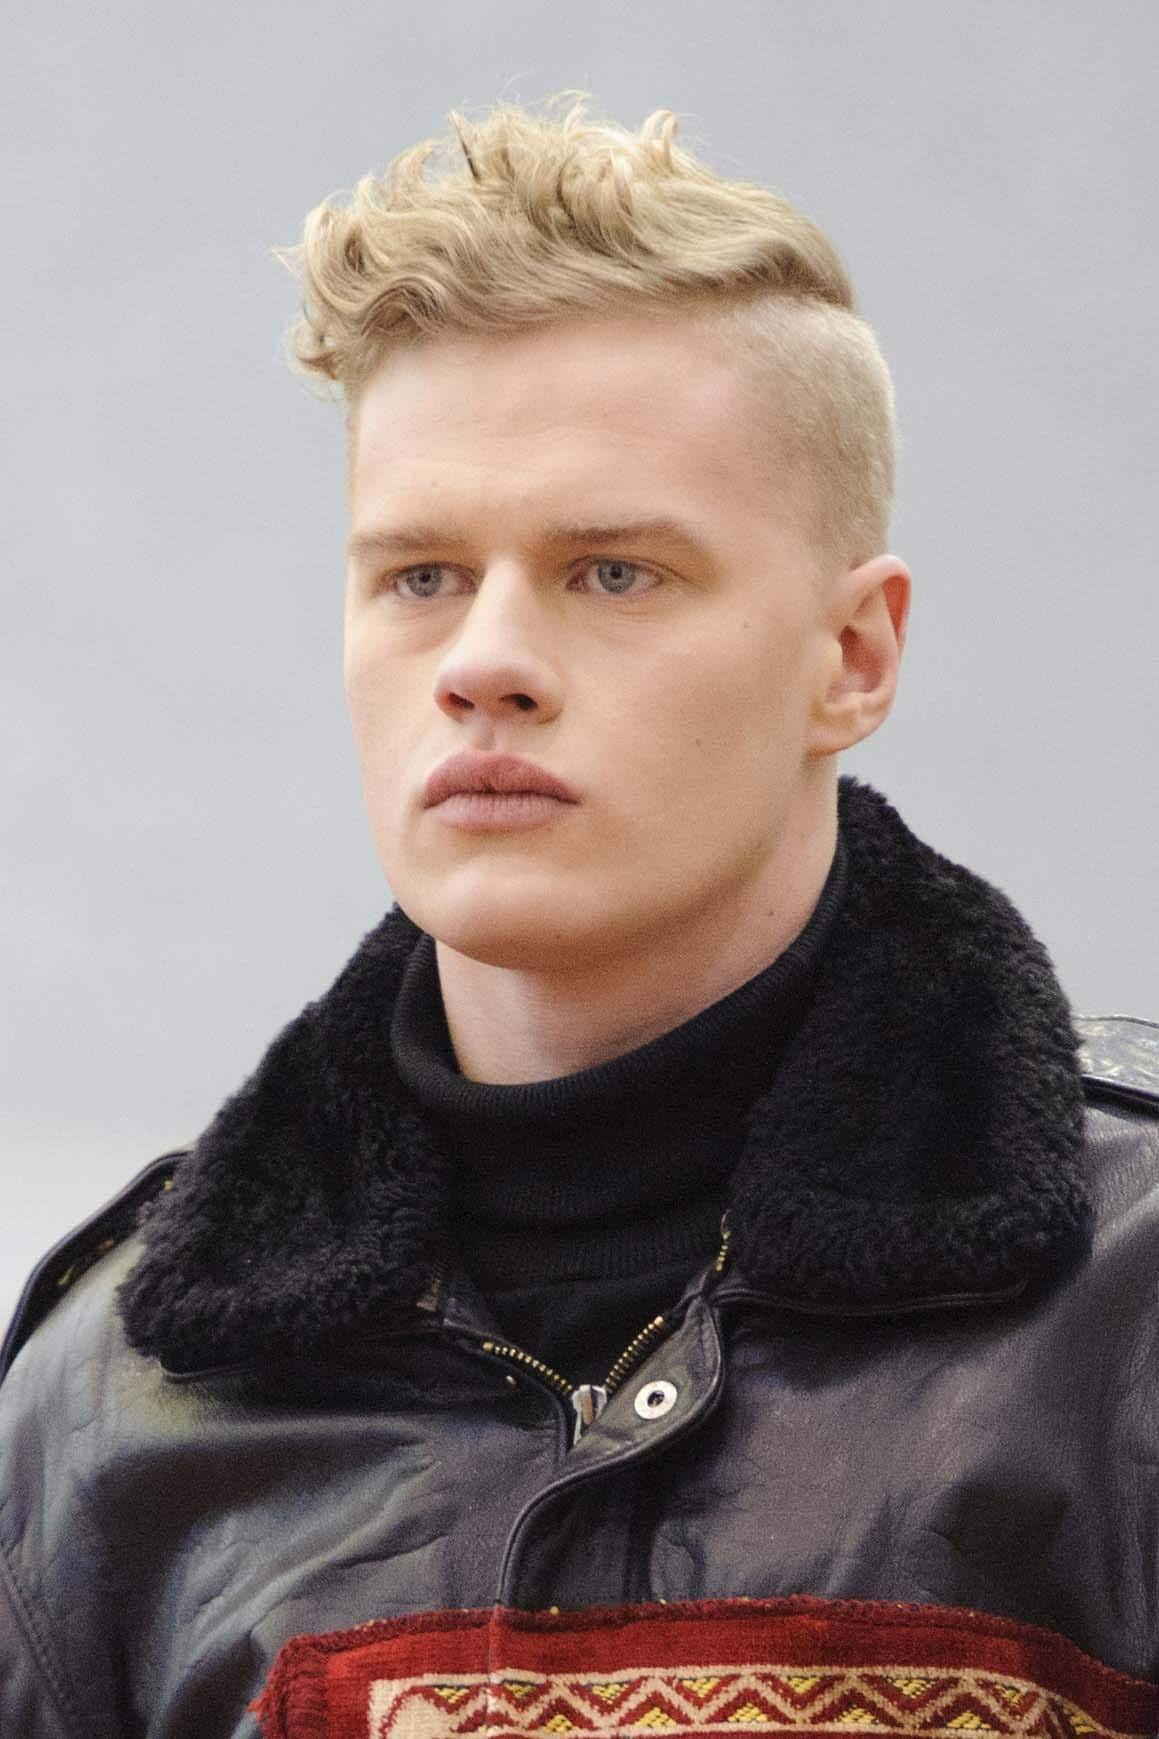 Best Haircuts For Men 42 Popular Looks To Try This Season